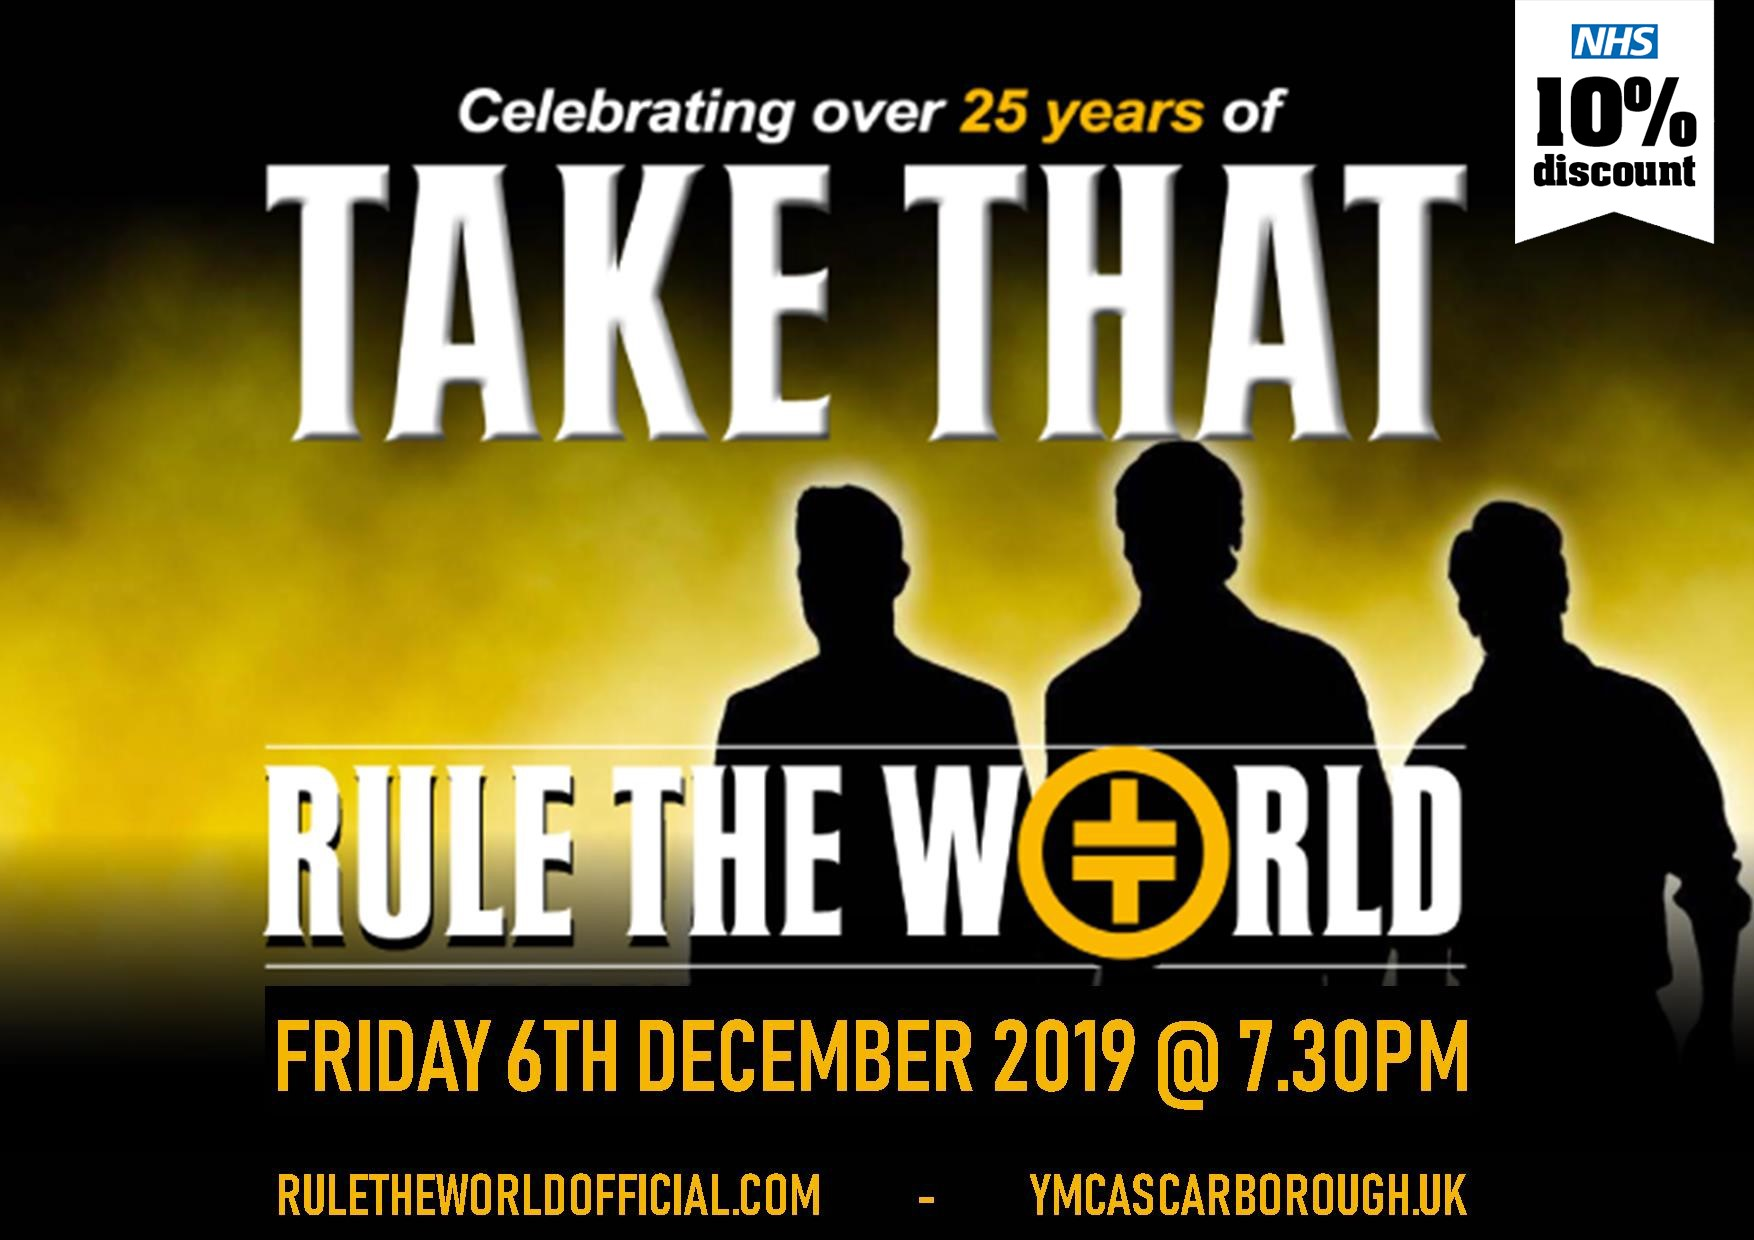 RULE THE WORLD - Official Number 1 TAKE THAT Tribute Band